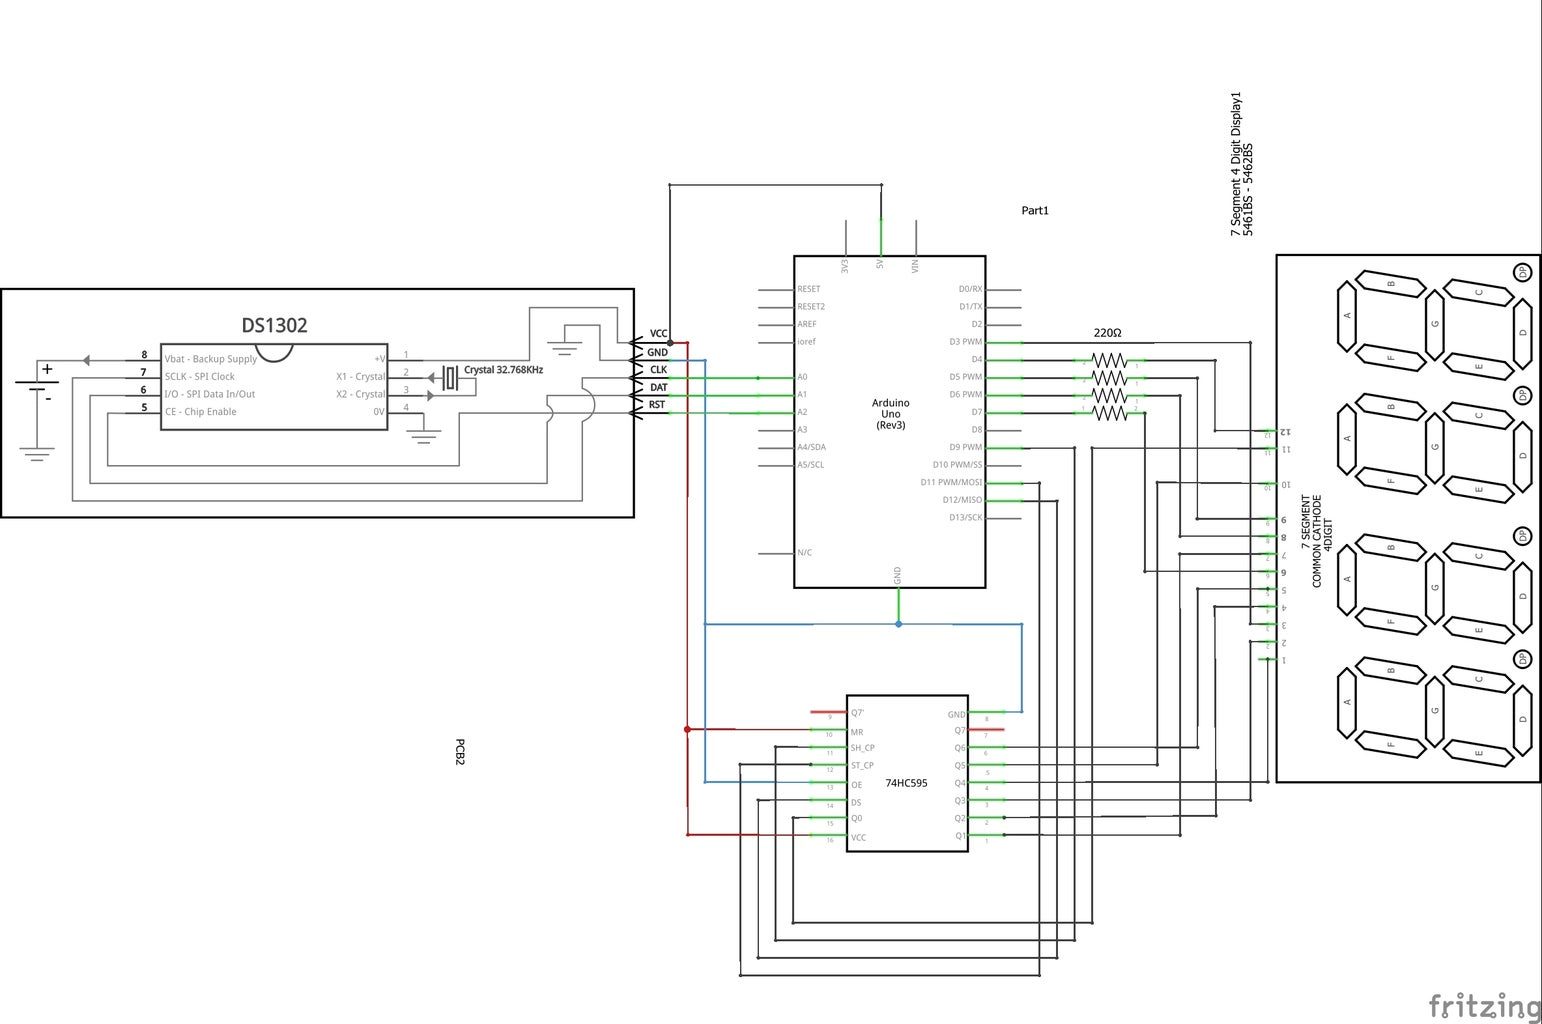 Connections/Wiring